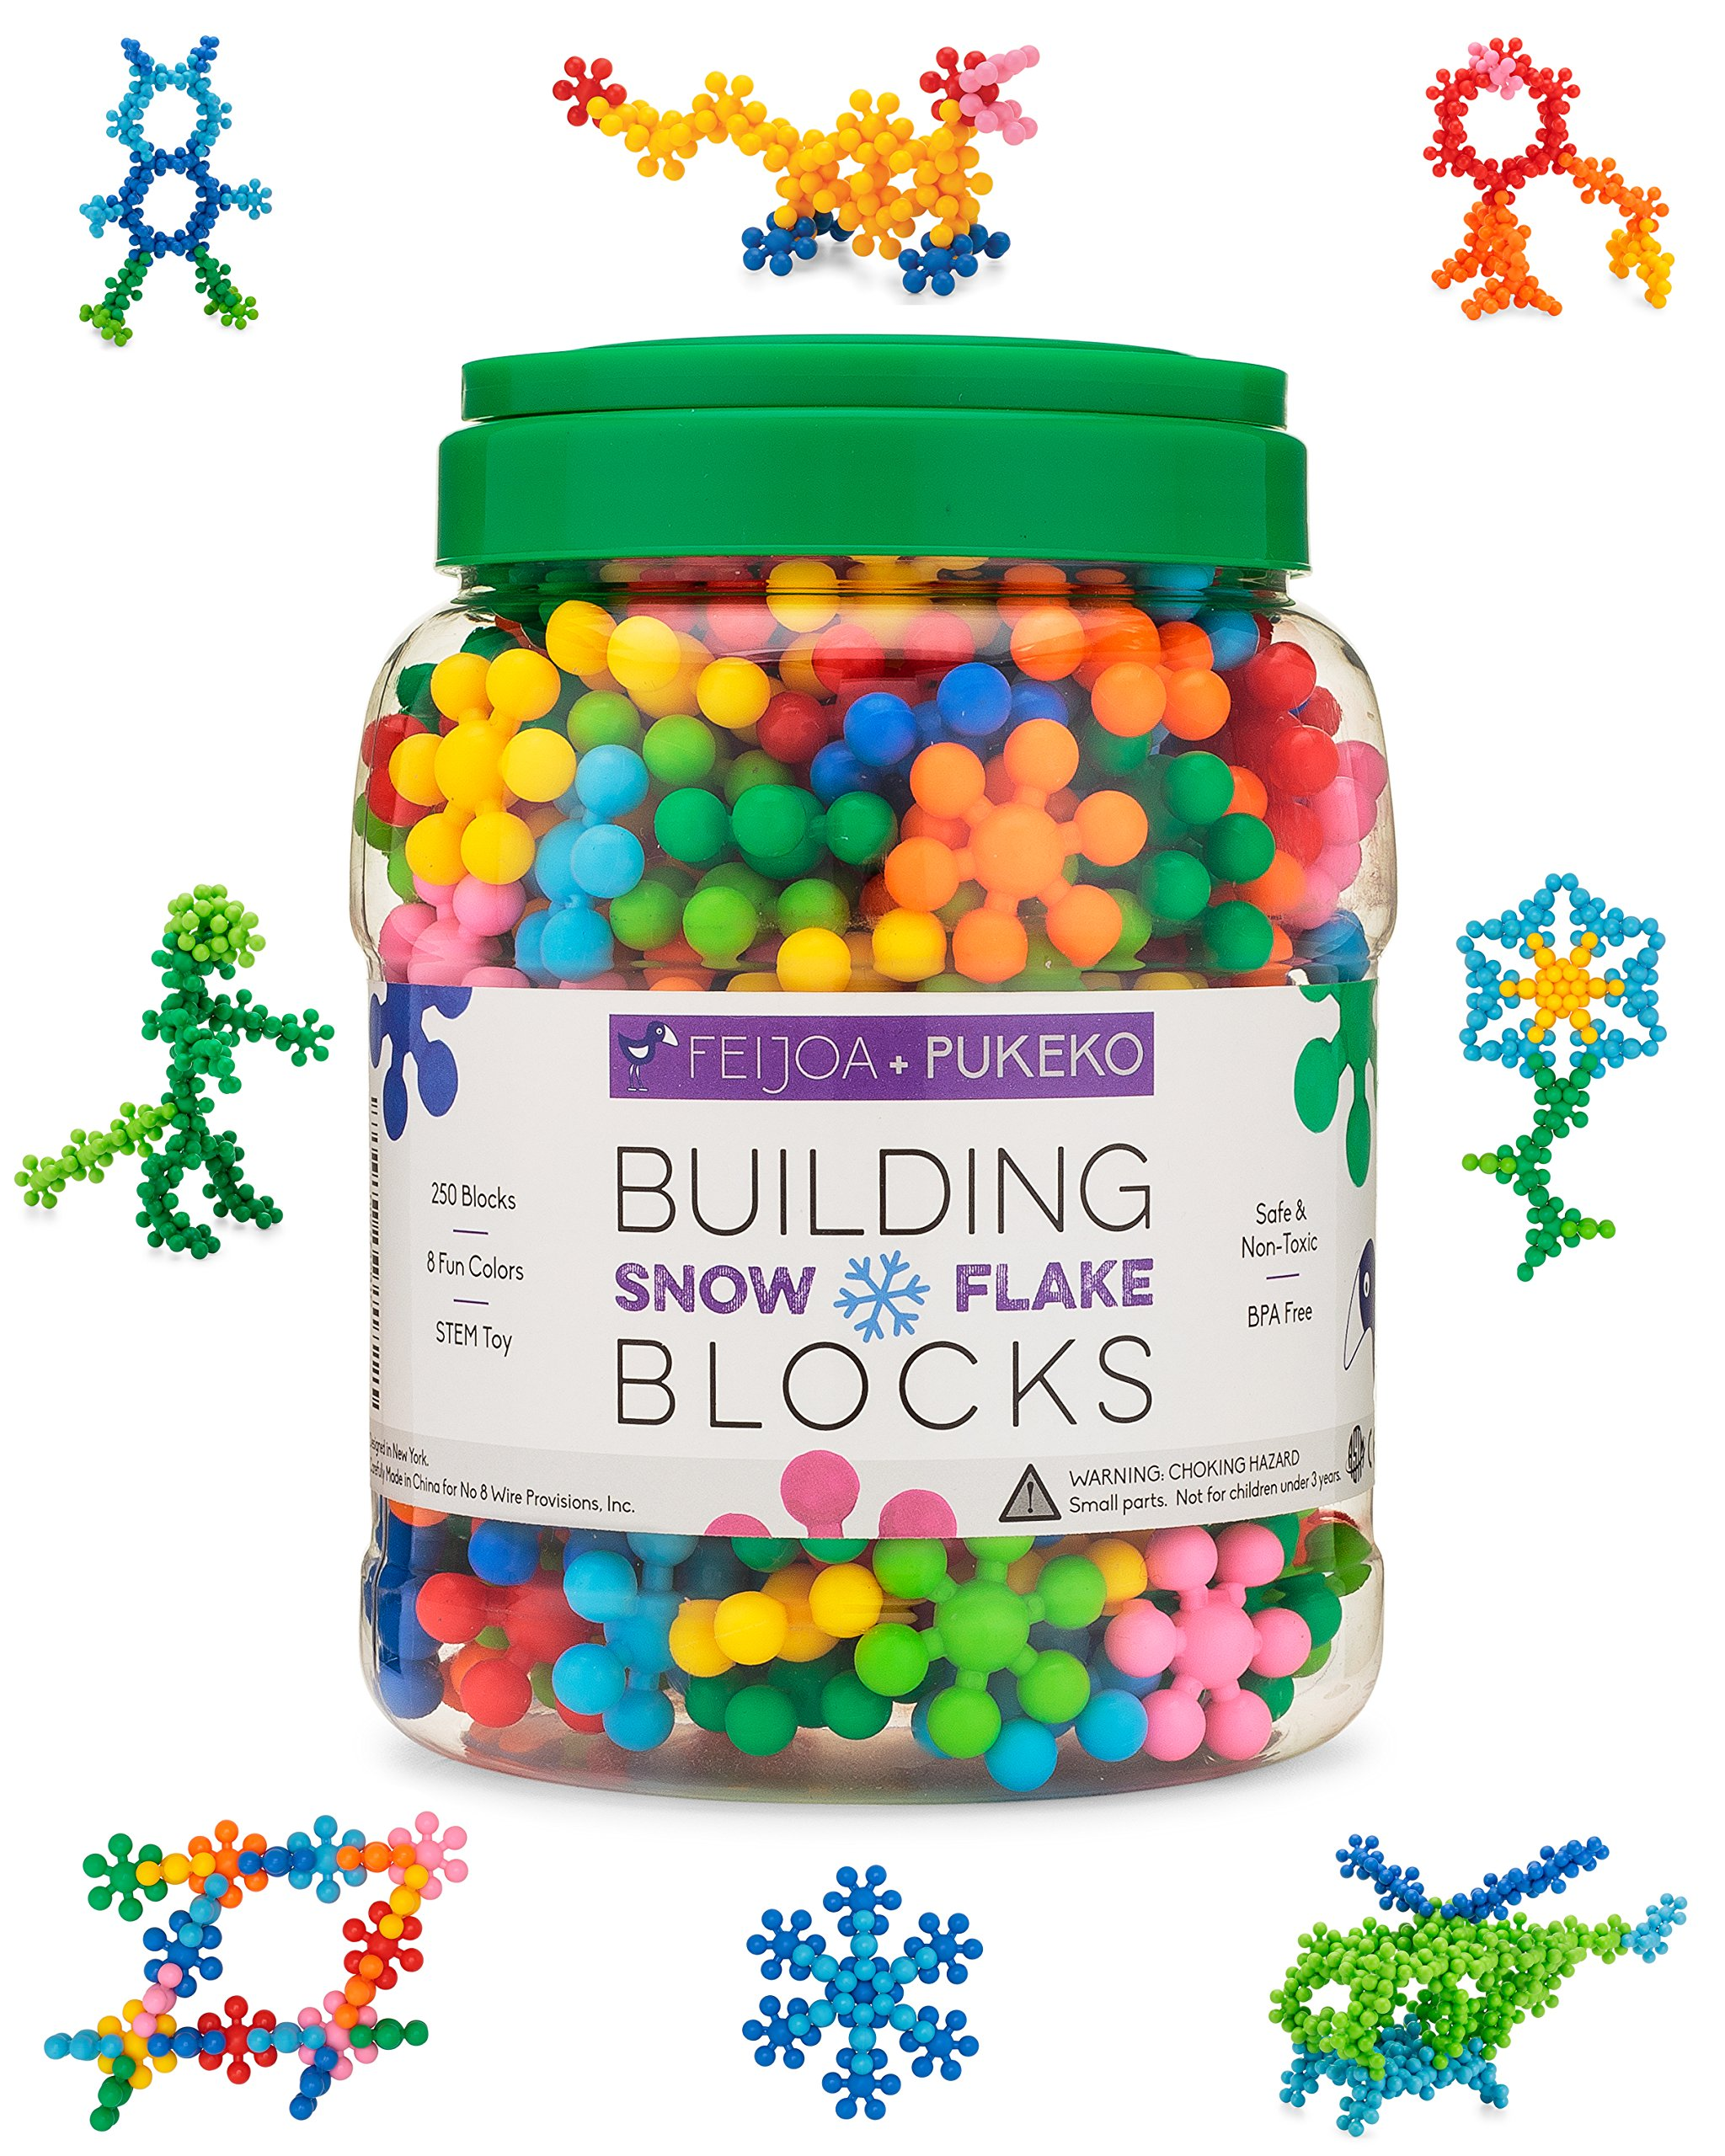 Snowflake Building Blocks Kids STEM Educational Toys - 250 Piece Mega Set of Plastic Interlocking Discs for Preschool, Toddler and School Boys and Girls - Creative & Development Toy - Feijoa + Pukeko